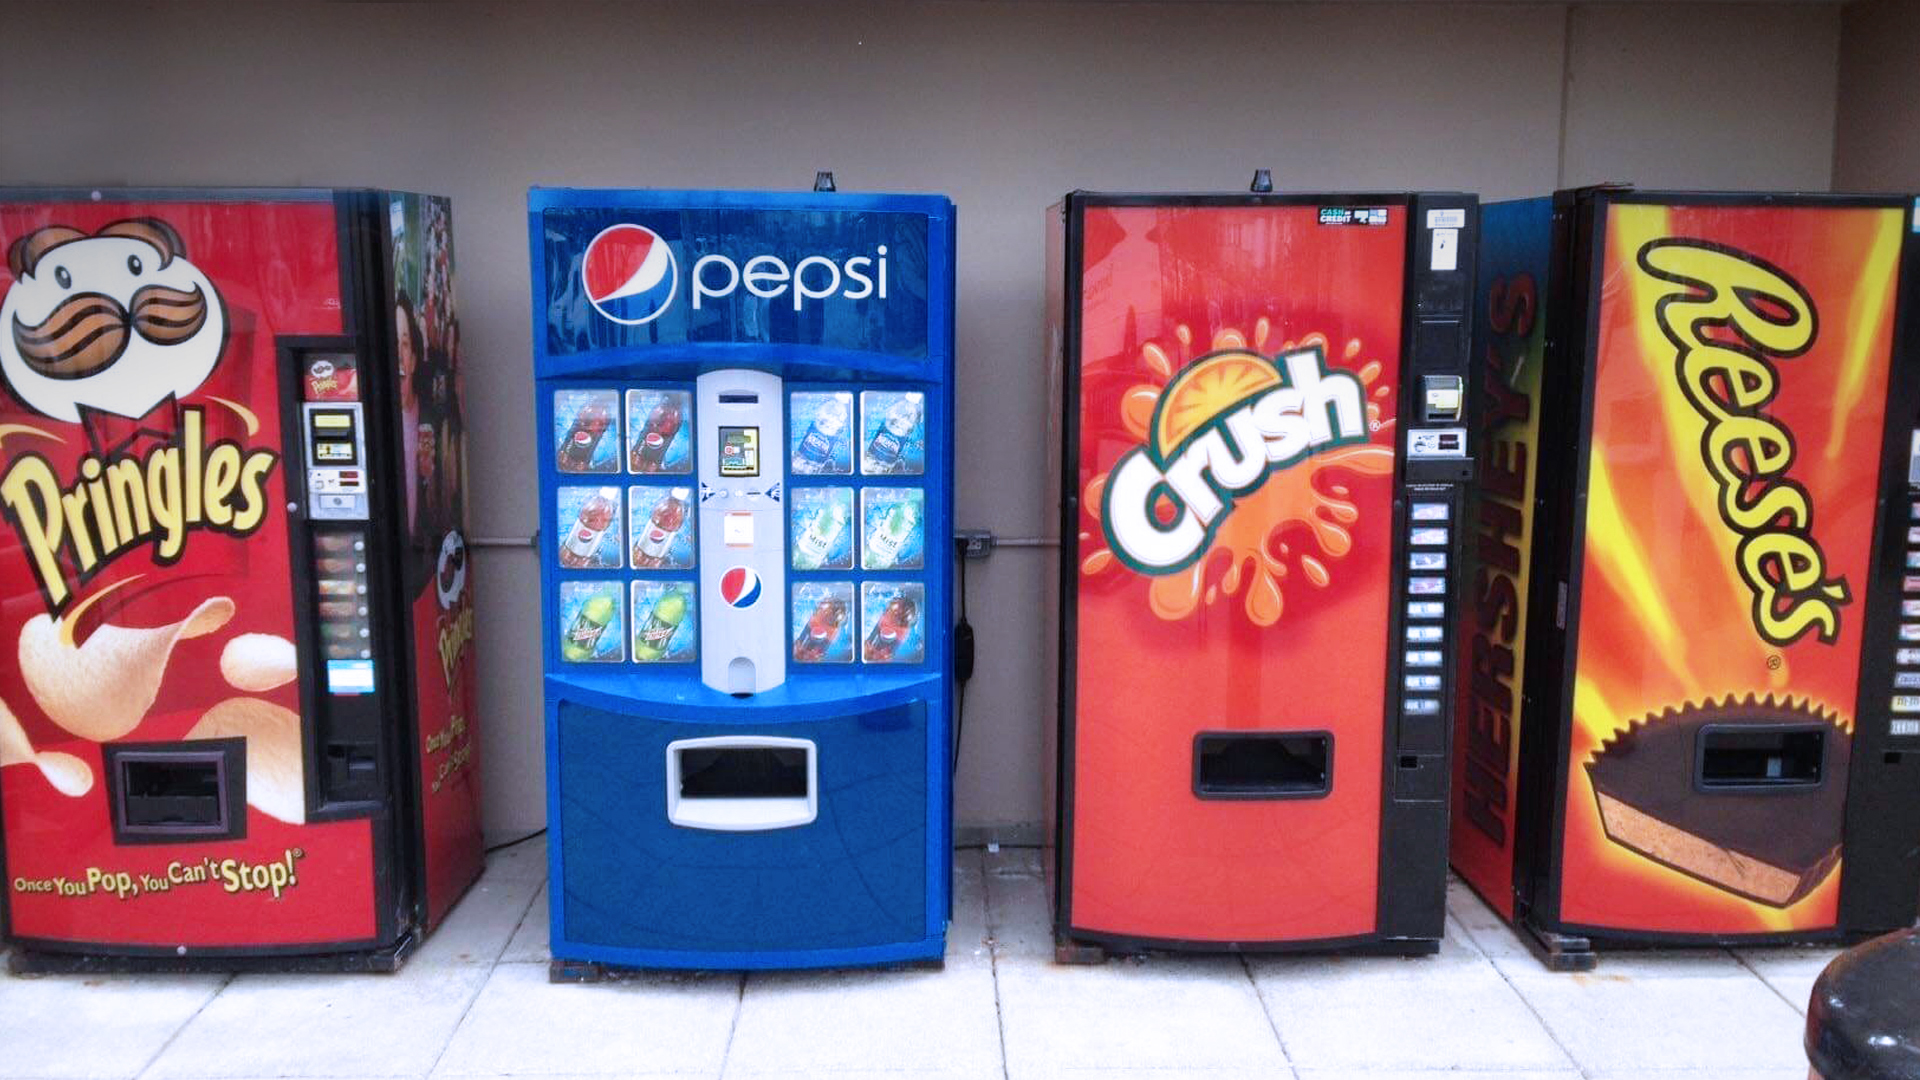 Jenis vending machine unik